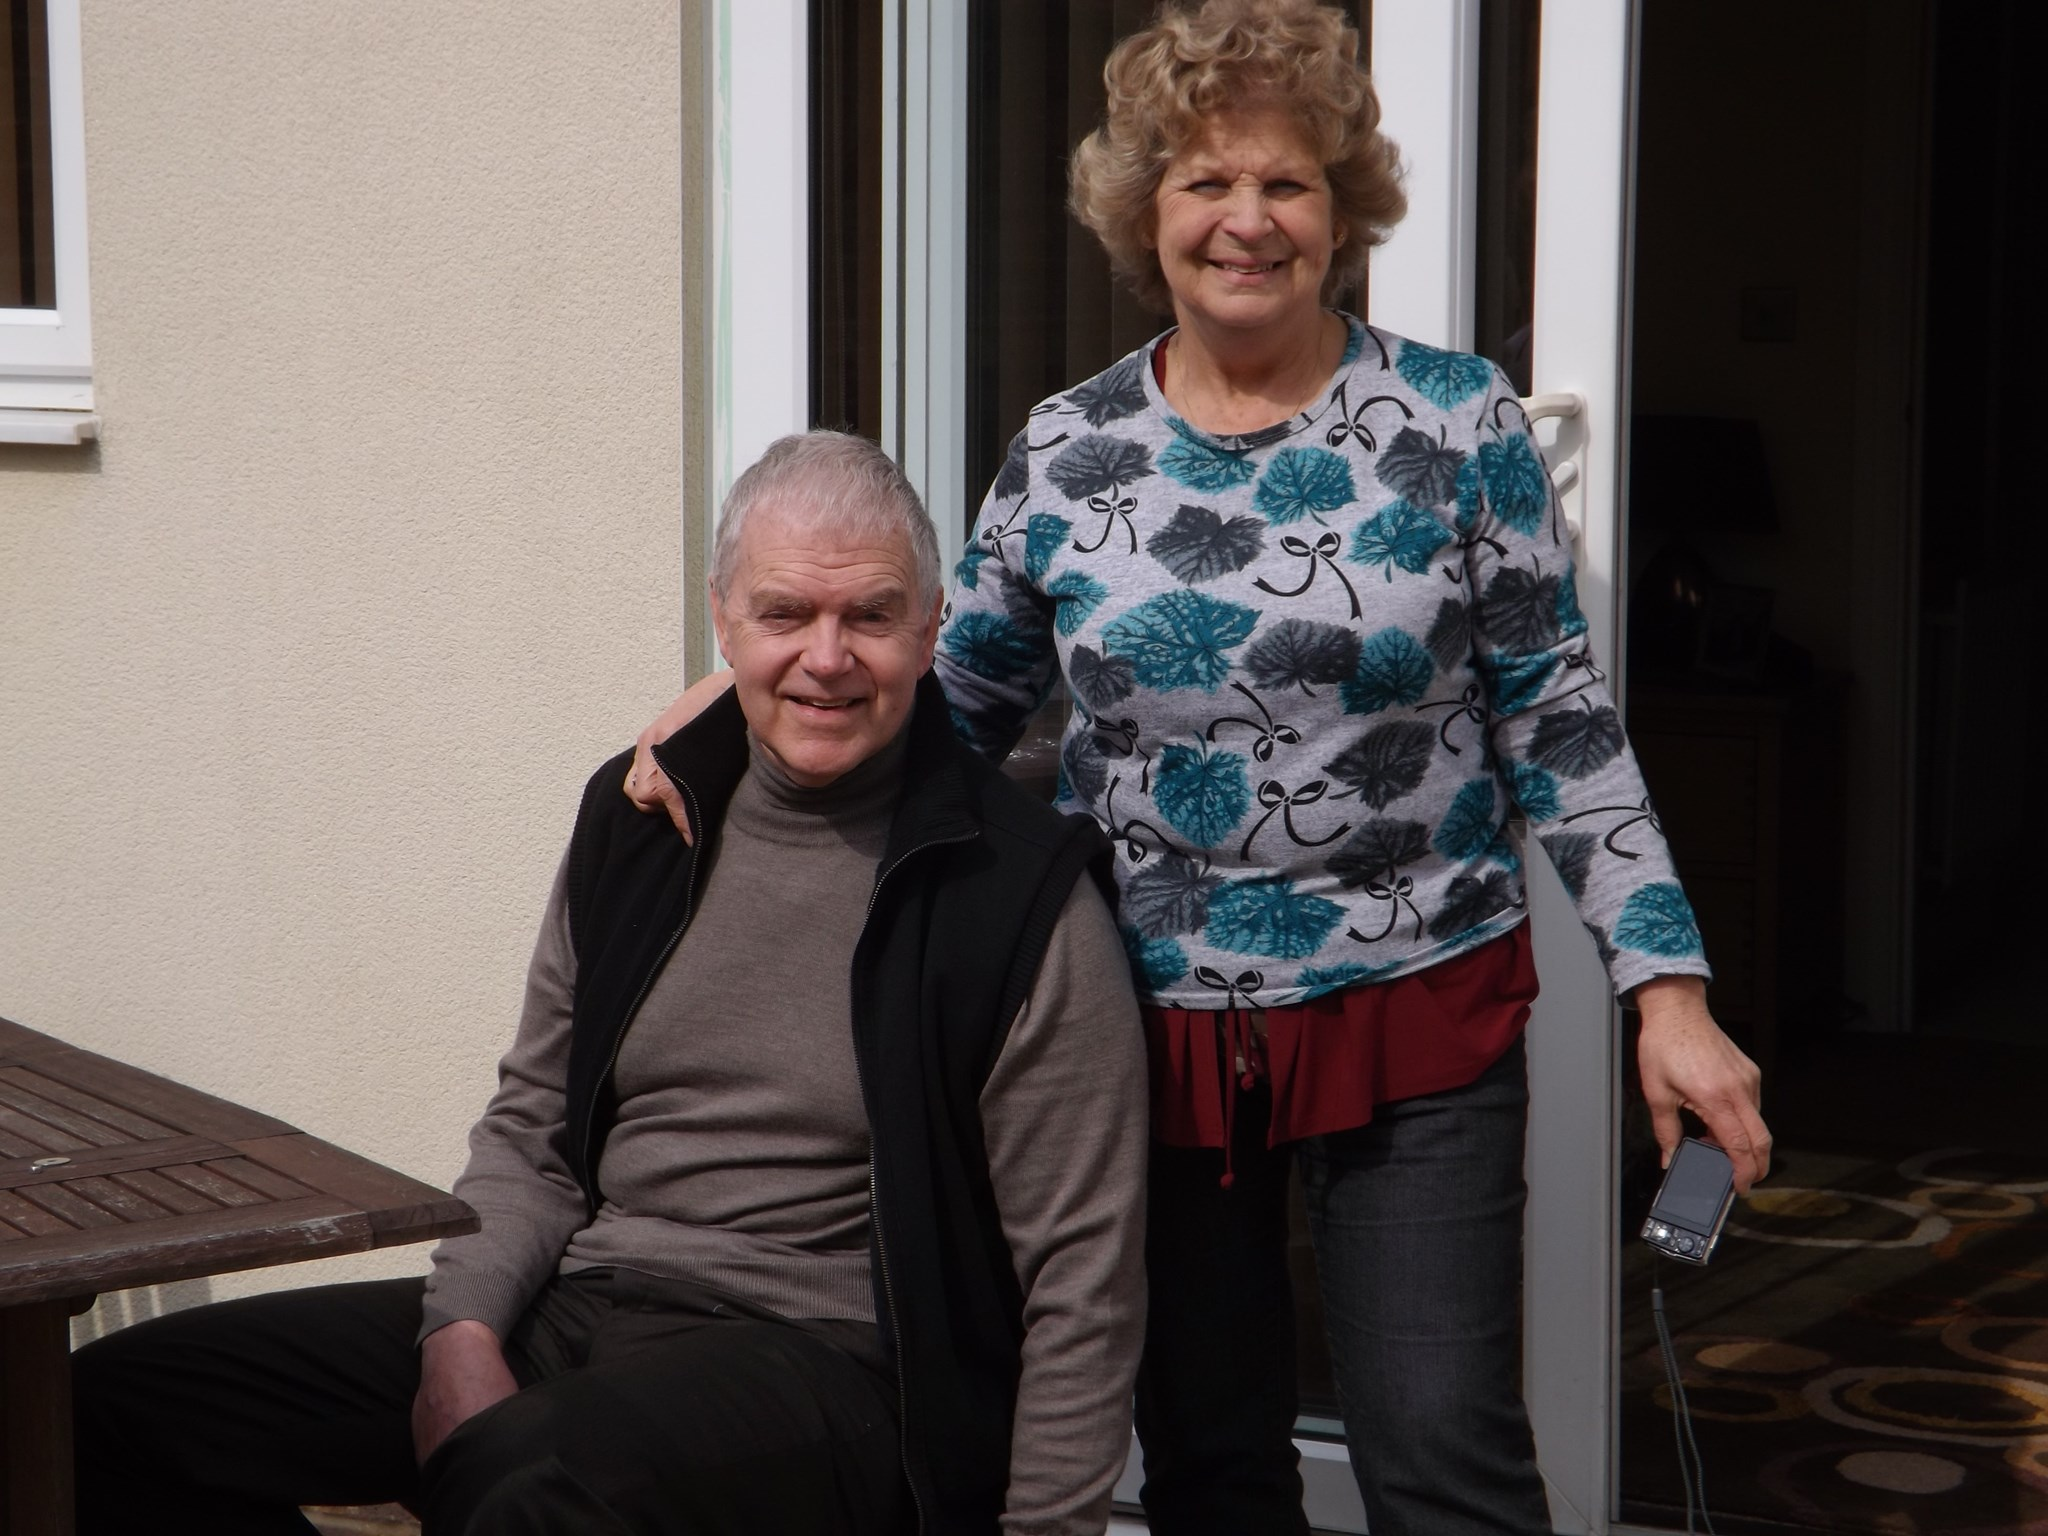 Mum and Dad at our house in Dorset x